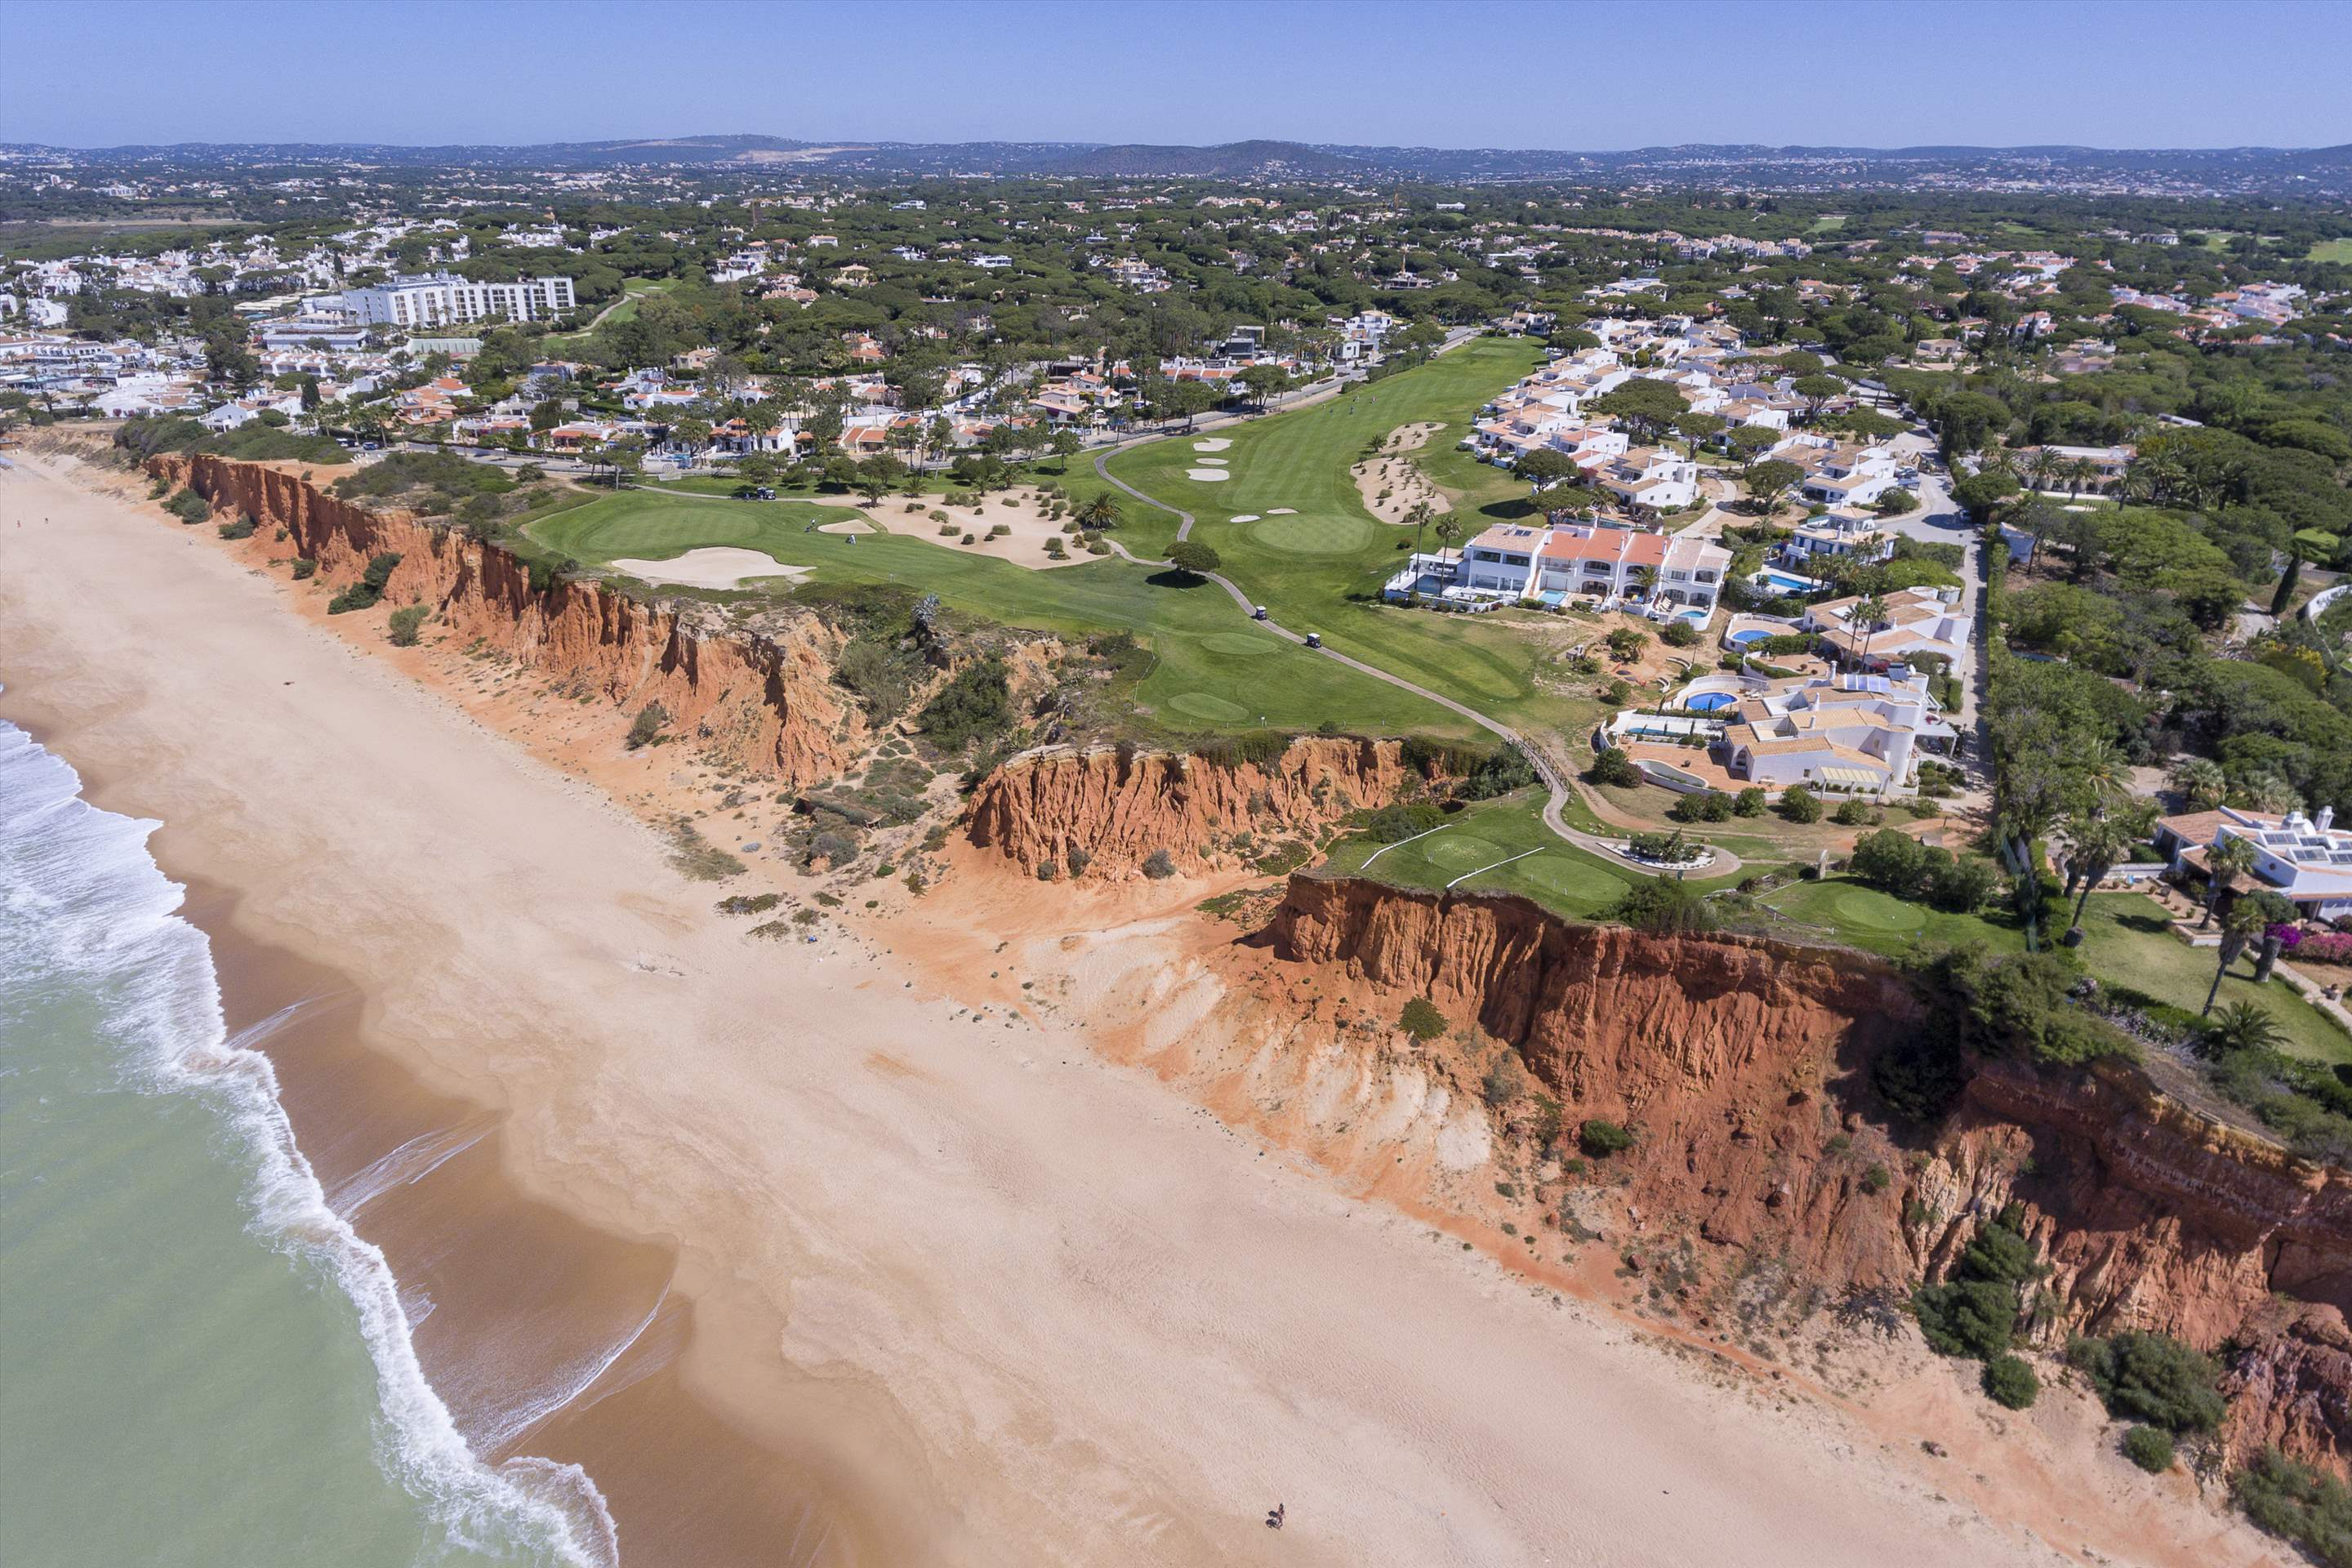 Villas Louisa, 3 bedroom, 3 bedroom villa in Vale do Lobo, Algarve Photo #27